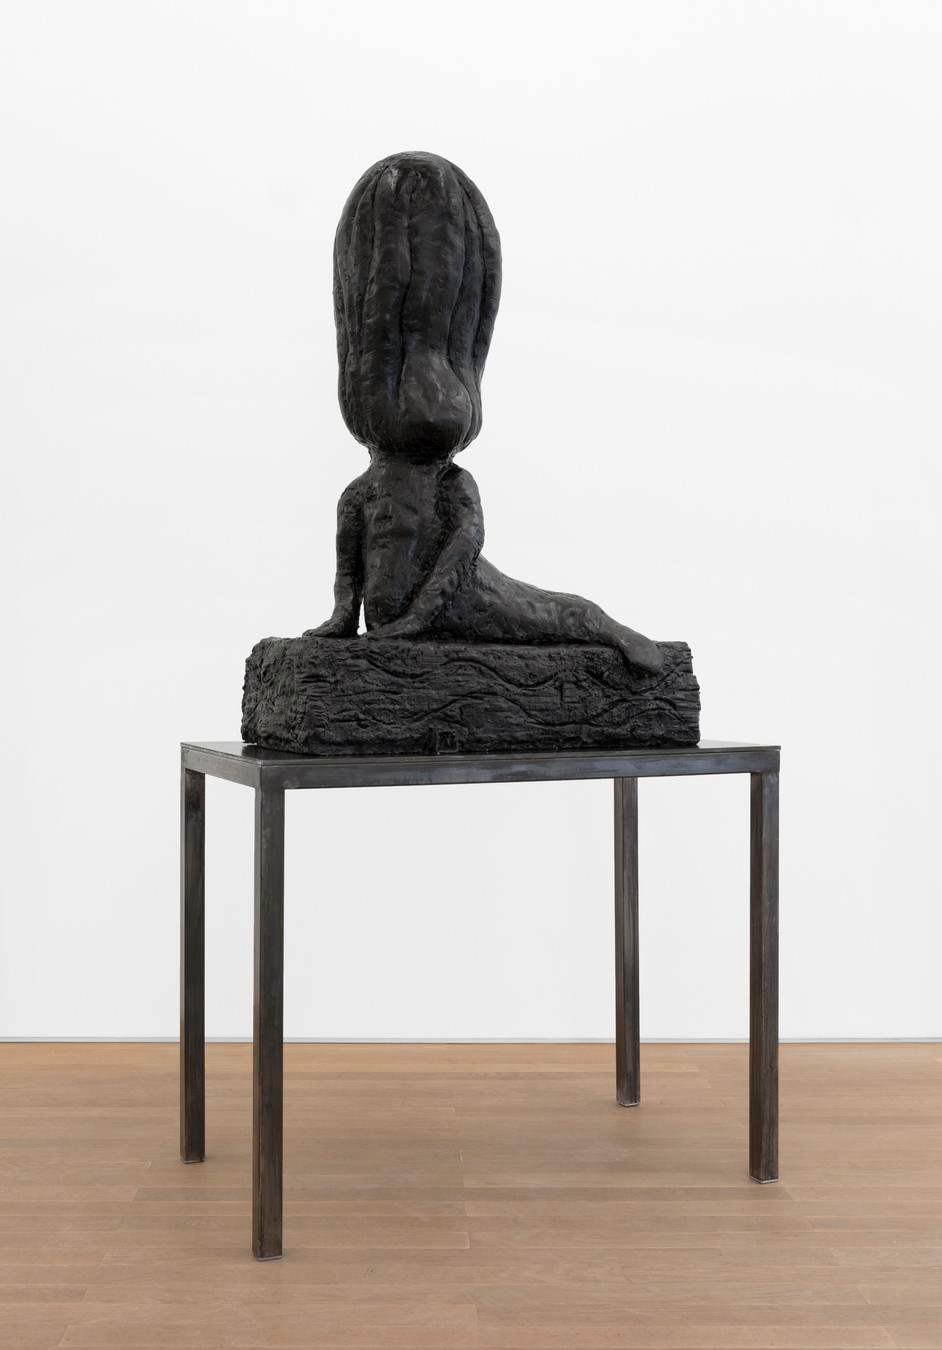 EDWARD LIPSKI Mermaid, 2020 rubber, steel 112 x 80 x 35 cm (sculpture) 81 x 101 x 55 cm (plinth) unique